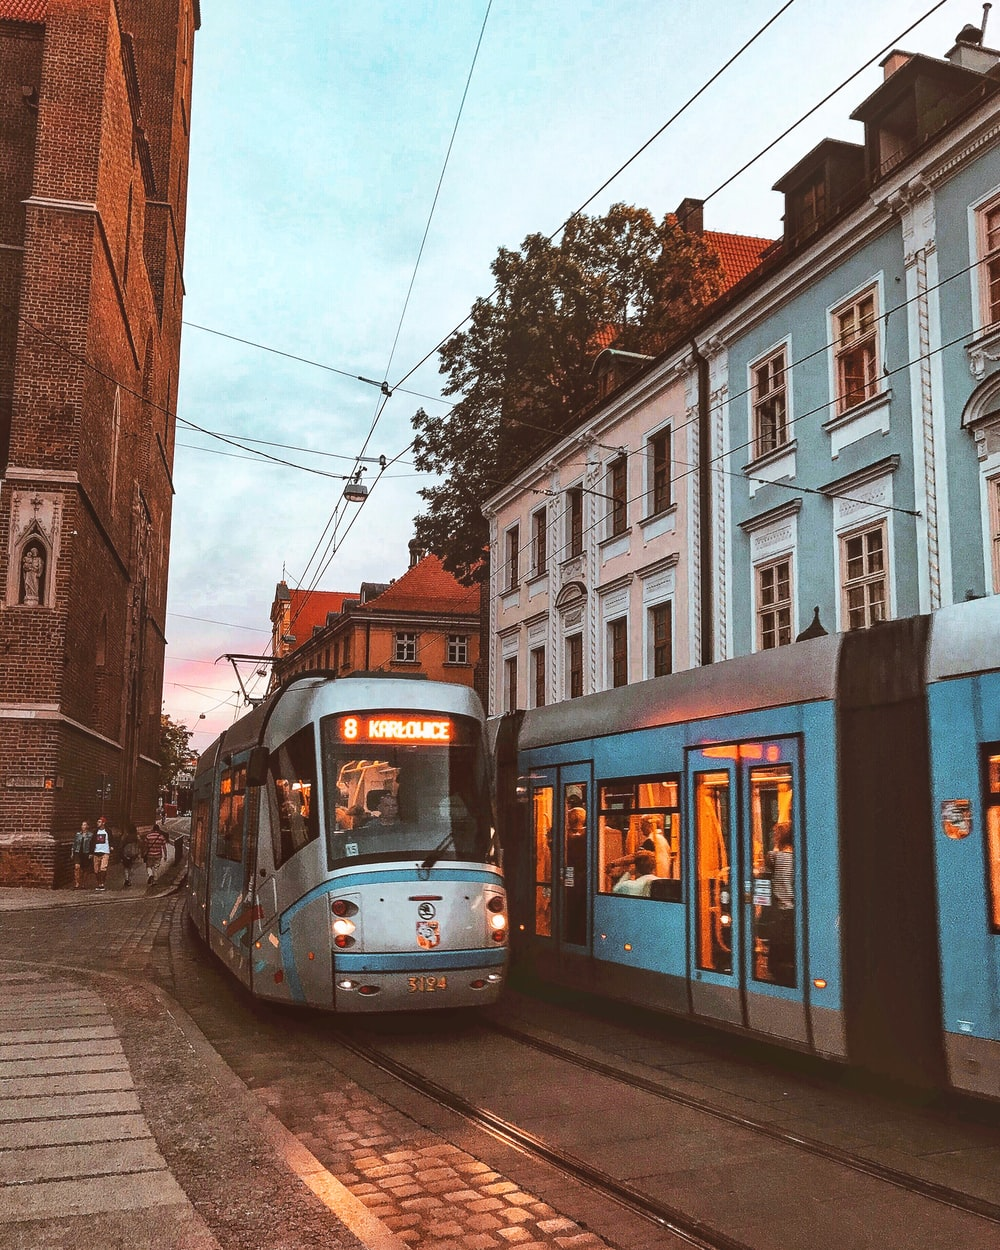 trams in city